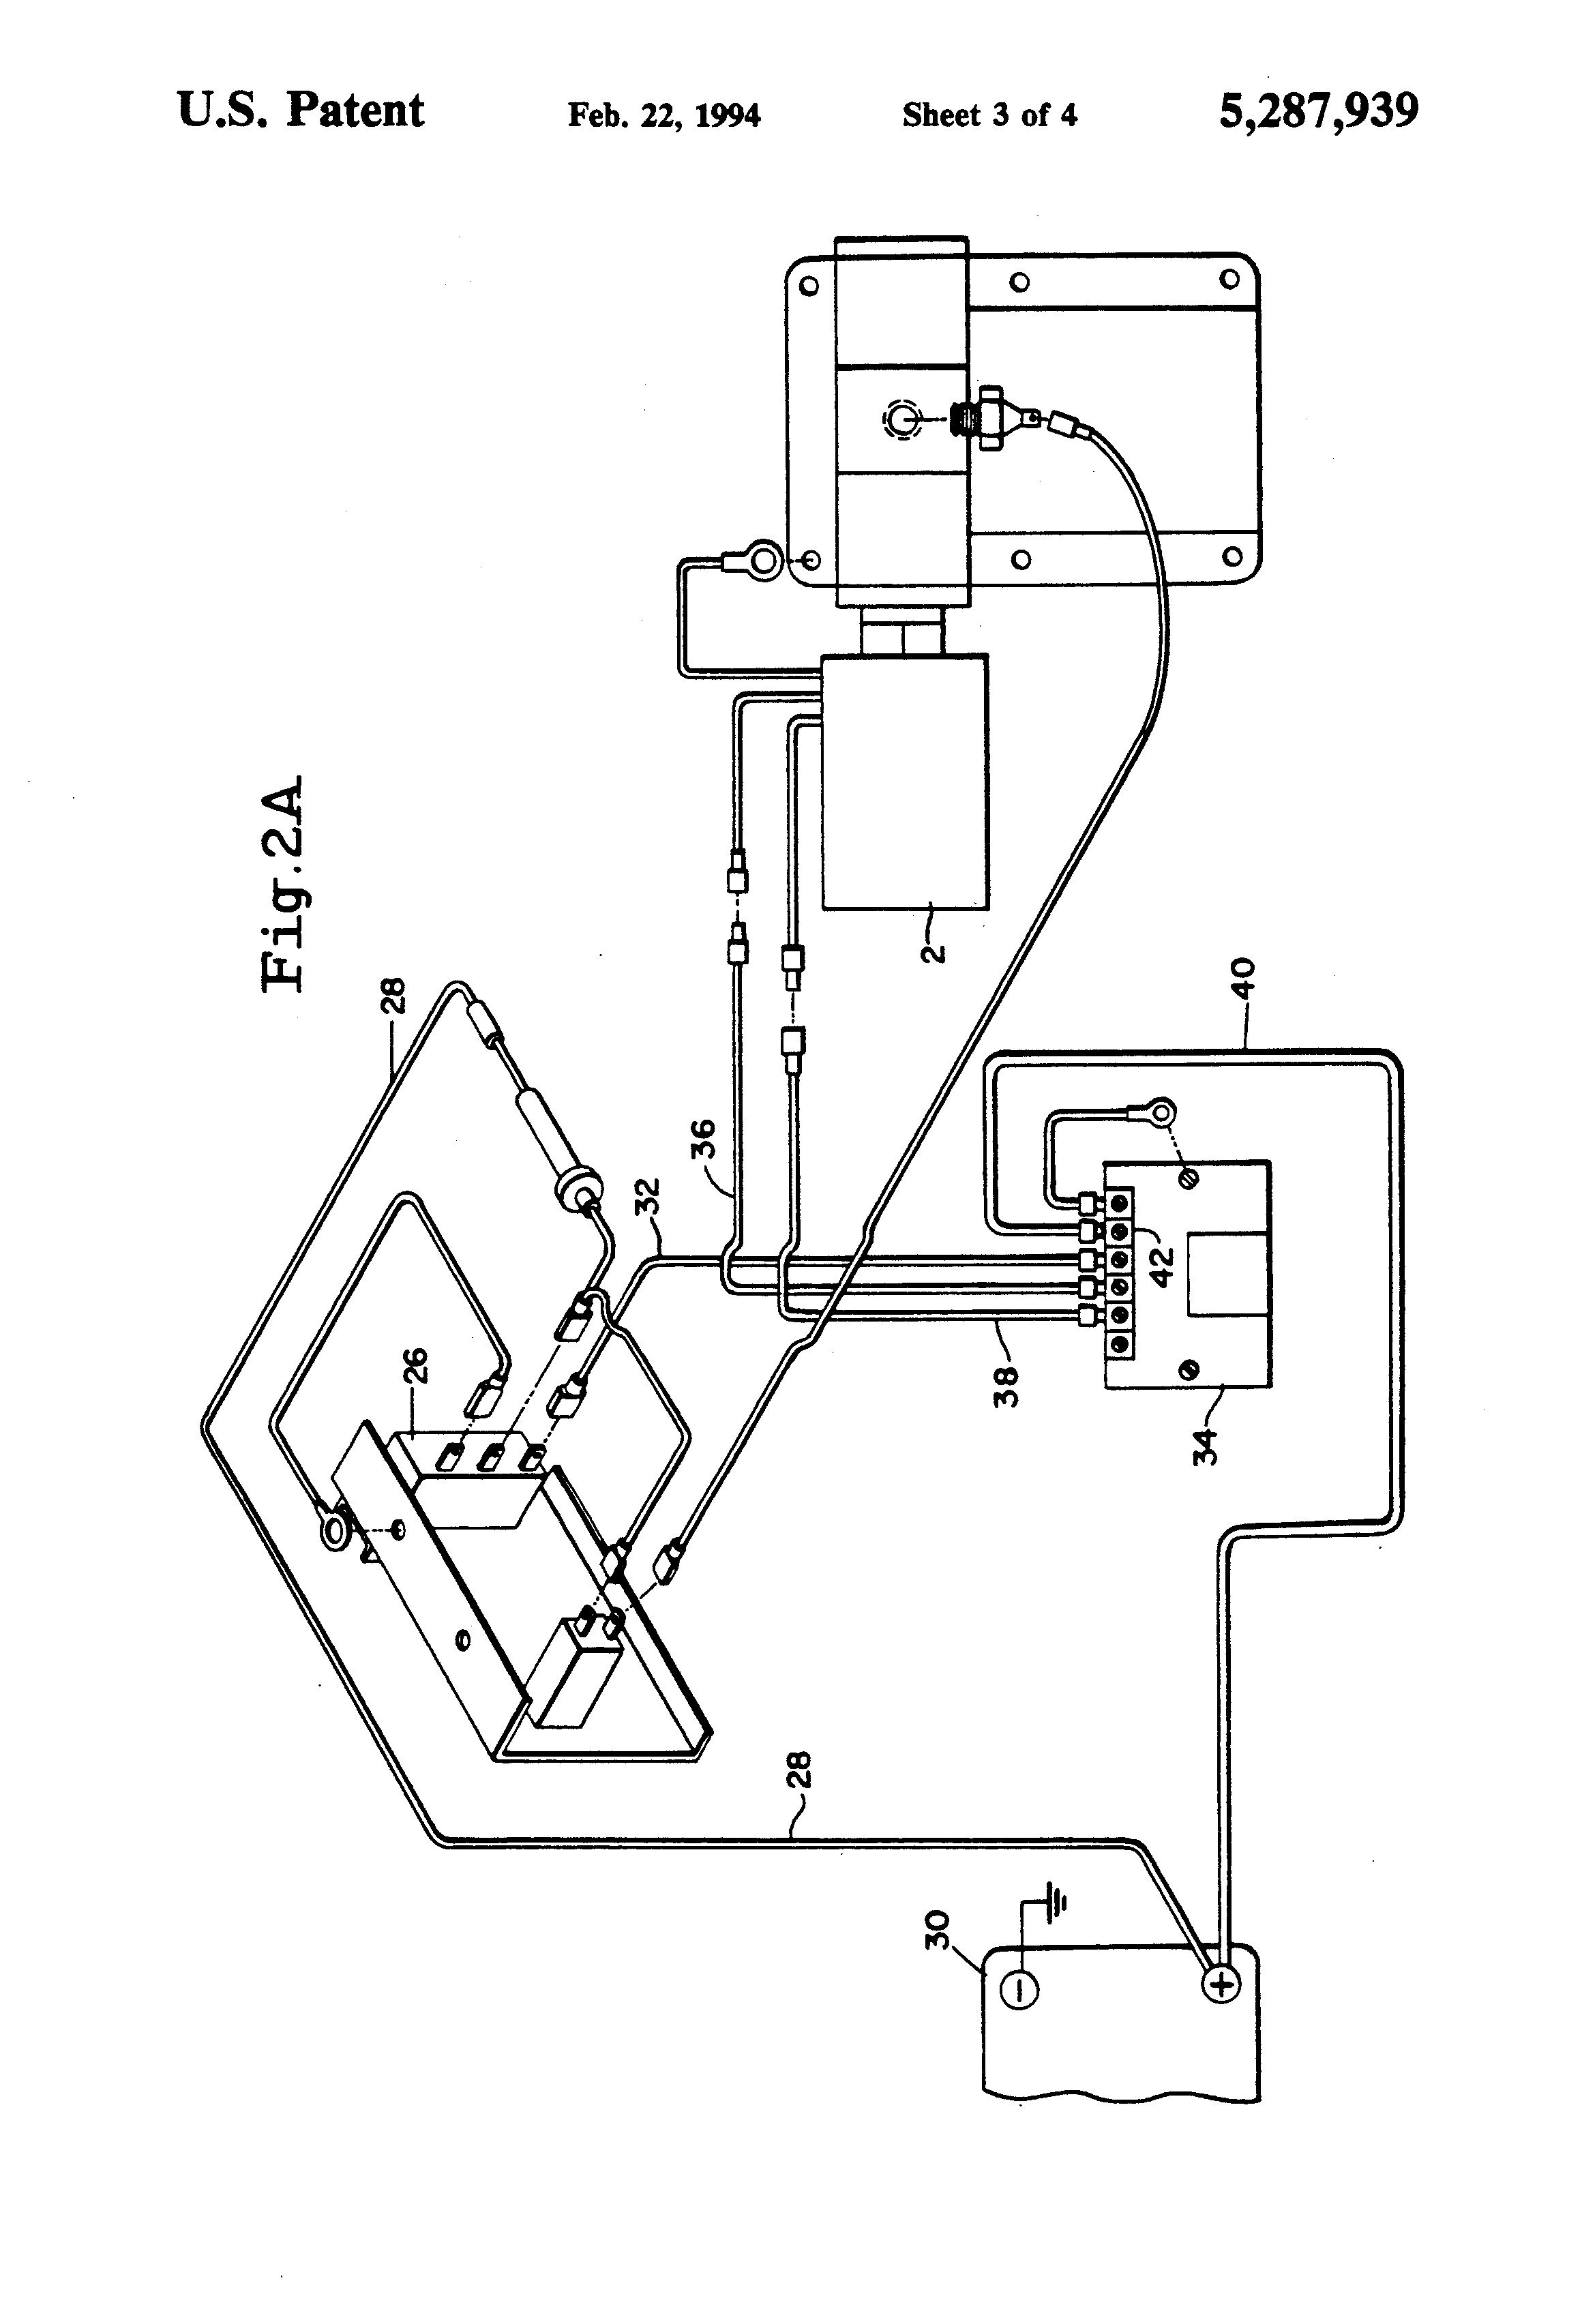 Lectra Shiftoption S Or Muncie Pto Wiring Diagram | Philteg.in - Pto Switch Wiring Diagram